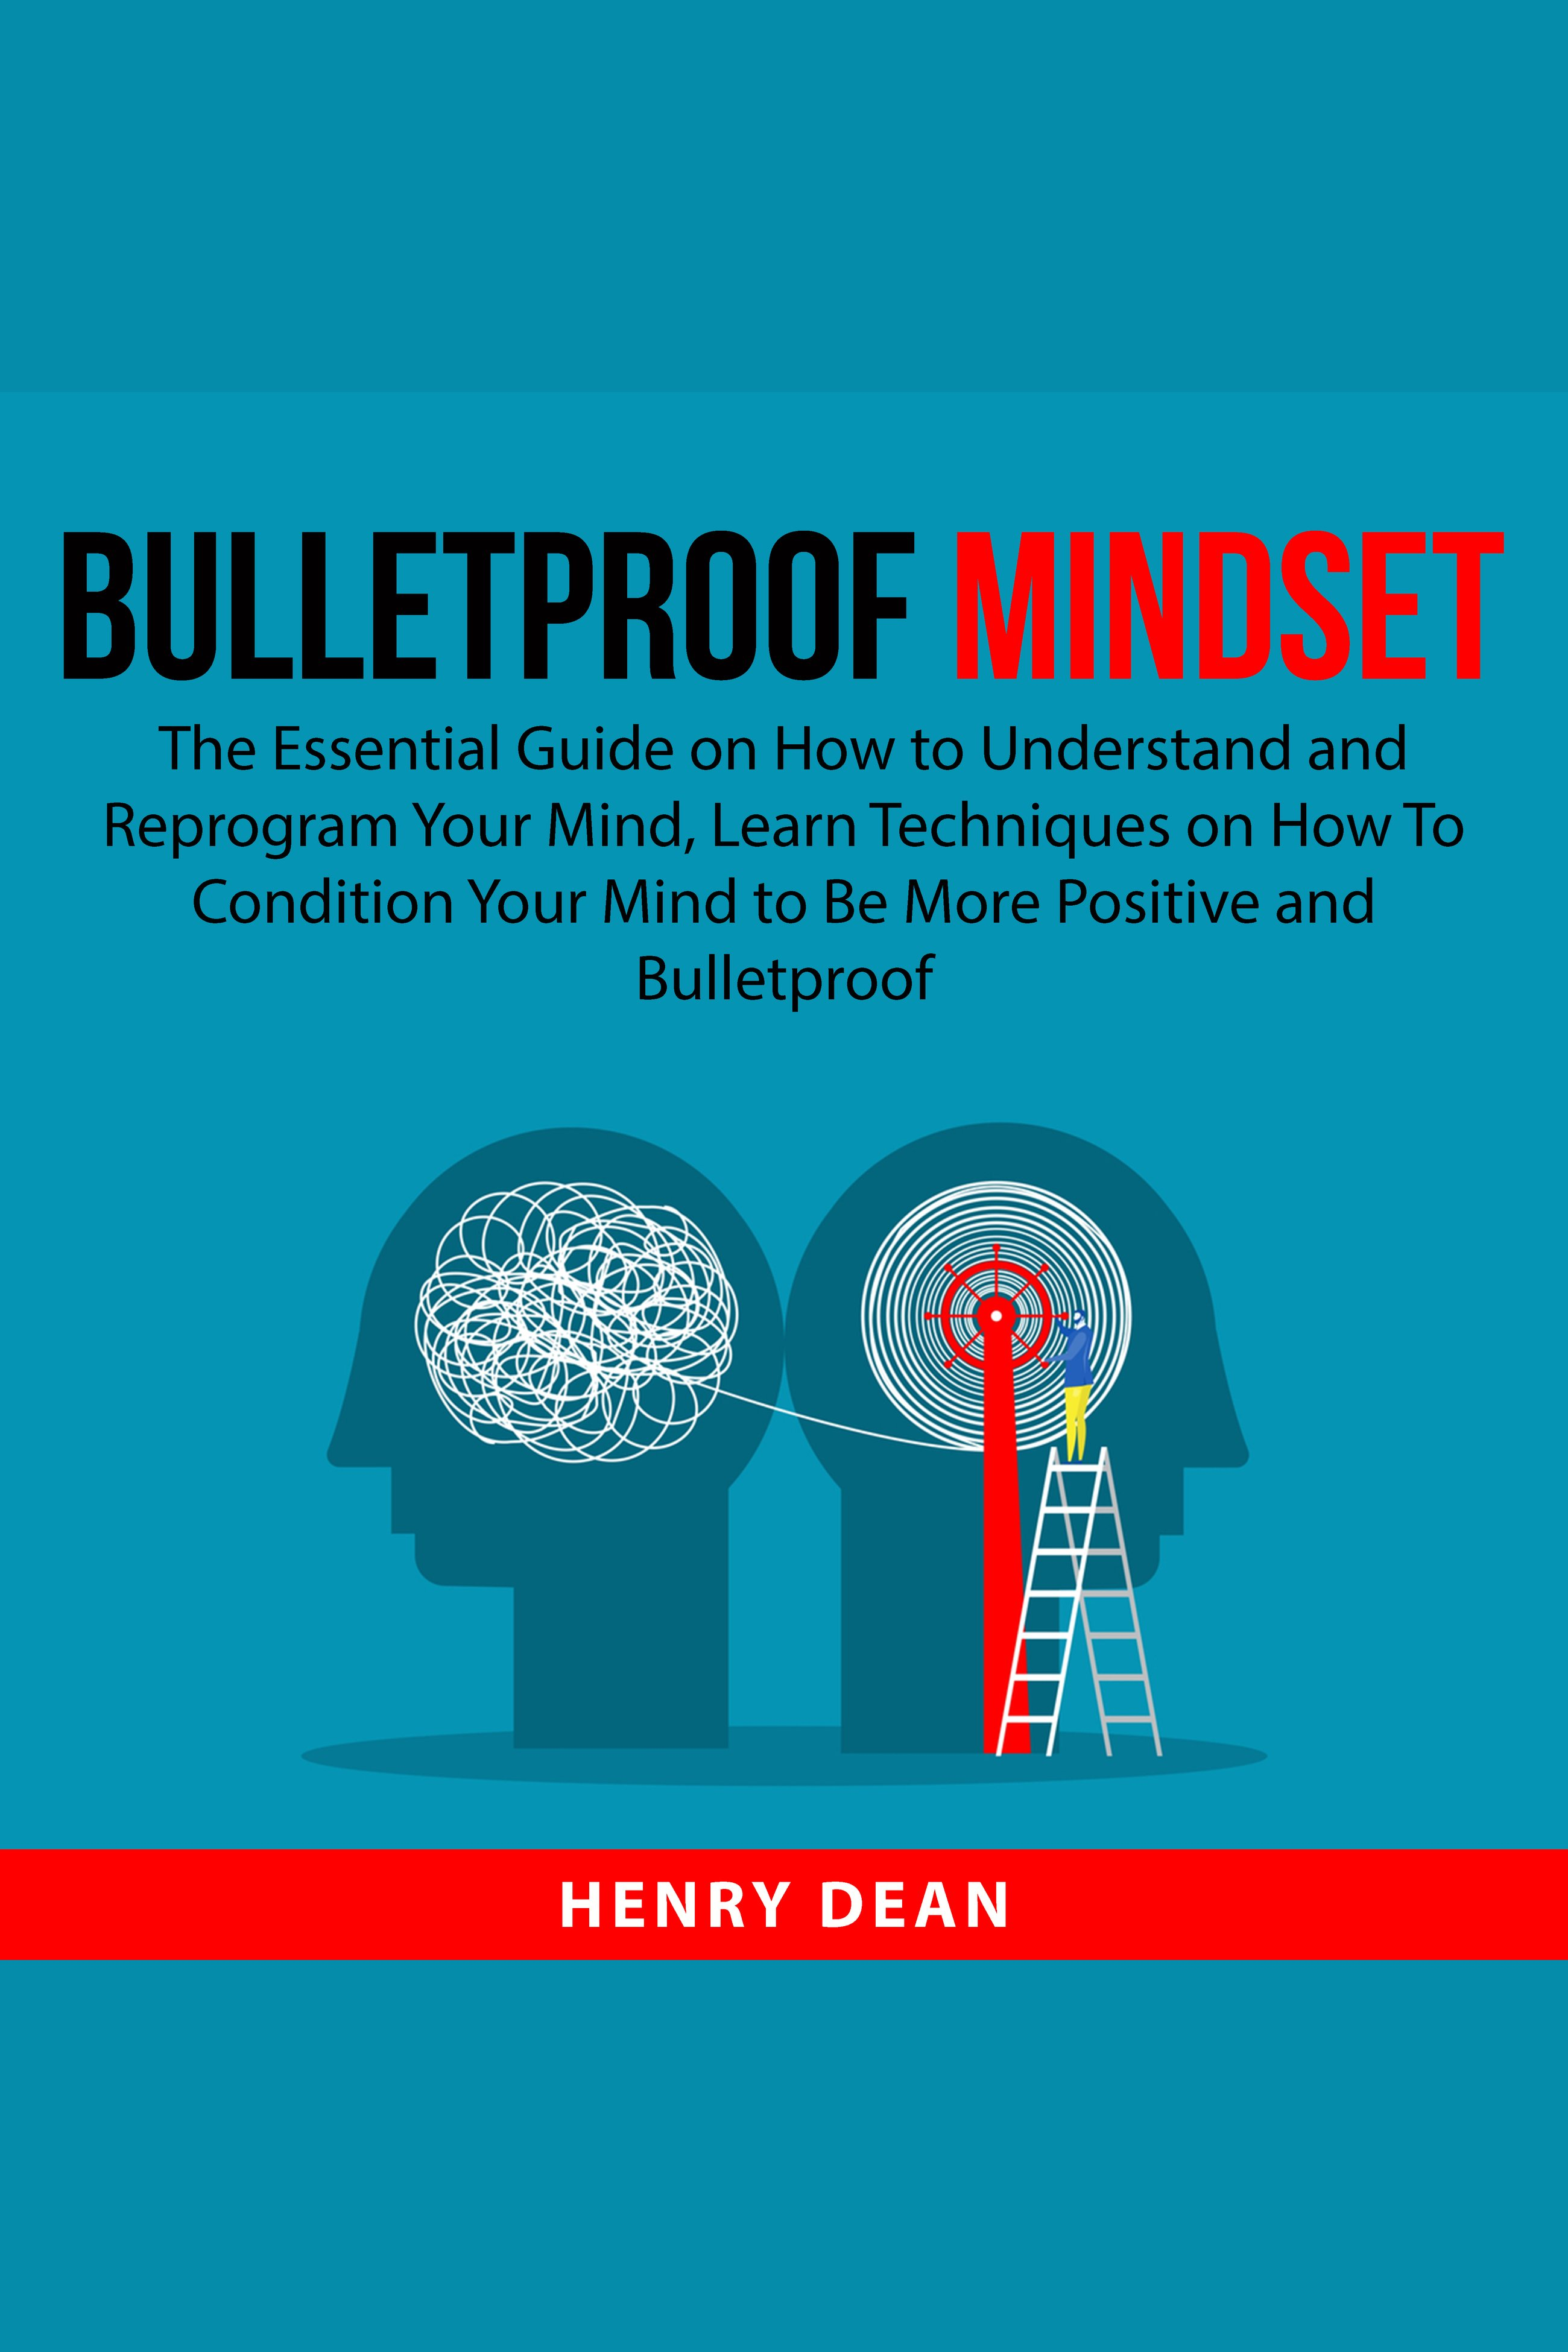 Bulletproof Mindset The Essential Guide on How to Understand and Reprogram Your Mind, Learn Techniques on How To Condition Your Mind to Be More Positive and Bulletproof